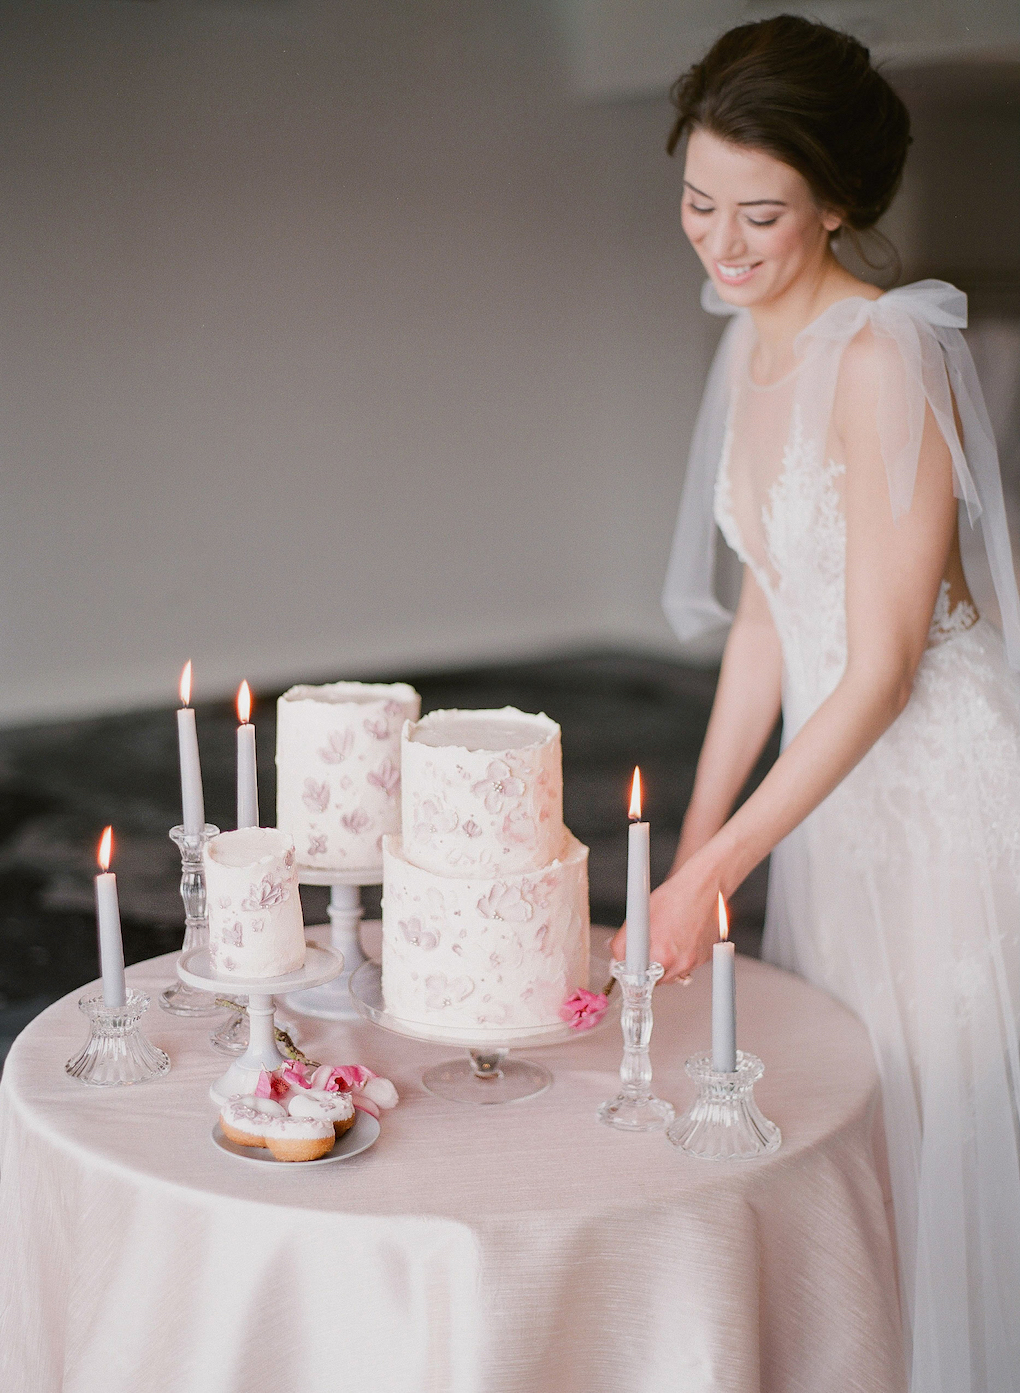 Cake Table Ideas for Your Wedding: Soft and Subtle Palettes of Spring Blossoms | Editorial Shoot at The Renaissance Pittsburgh by Exhale Events. See more inspiration at exhale-events.com!